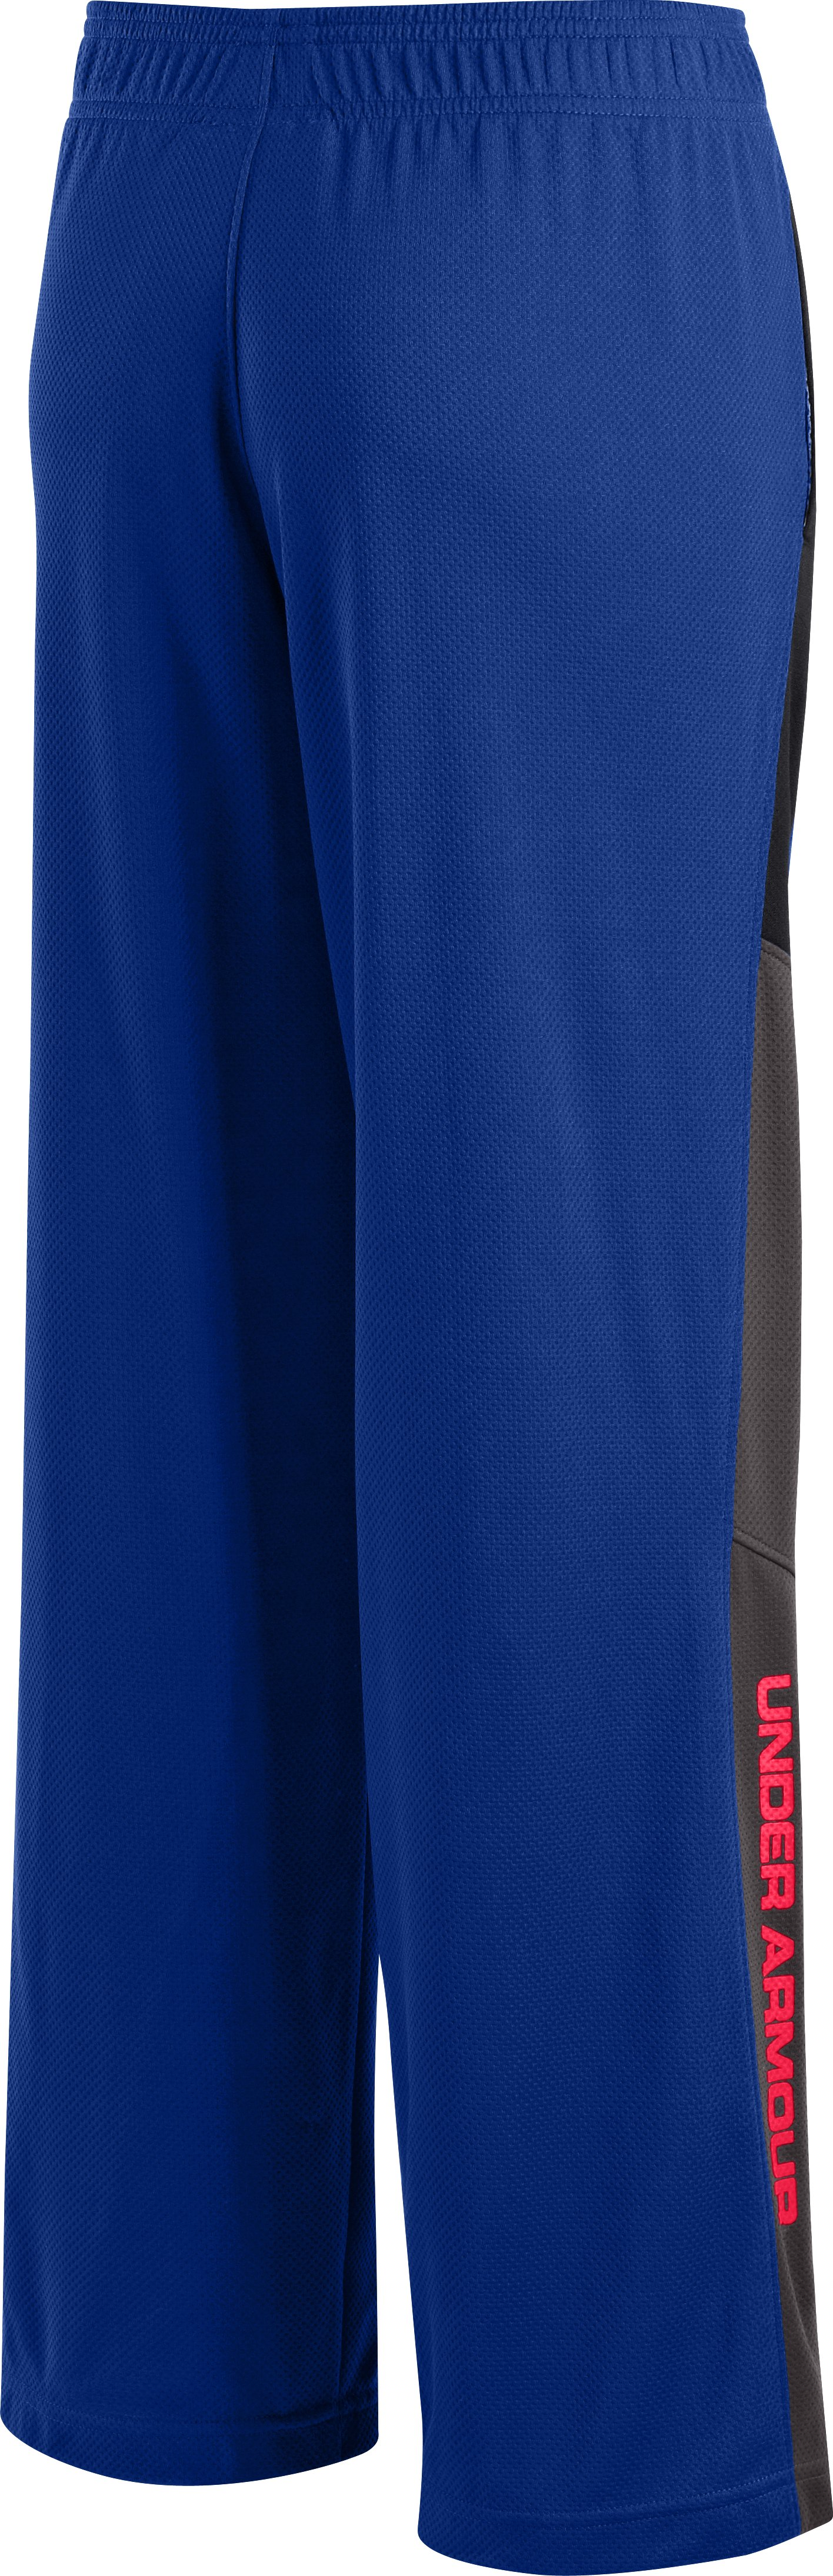 Boys' UA Hero Warm-Up Pants, Royal